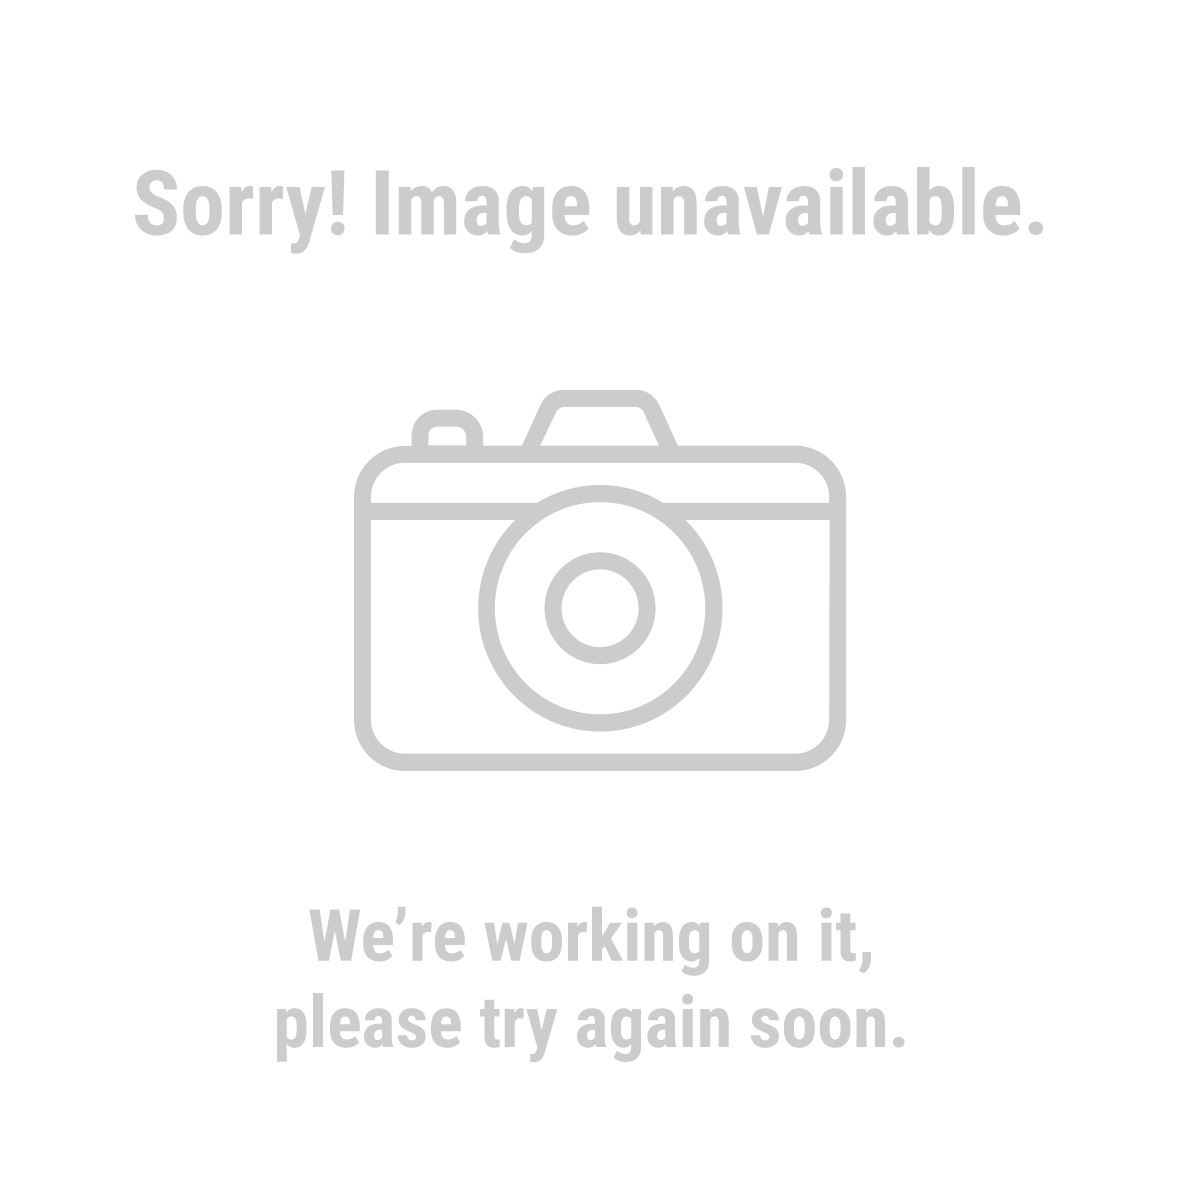 Western Safety 94235 Support Belt with Reflector - Large